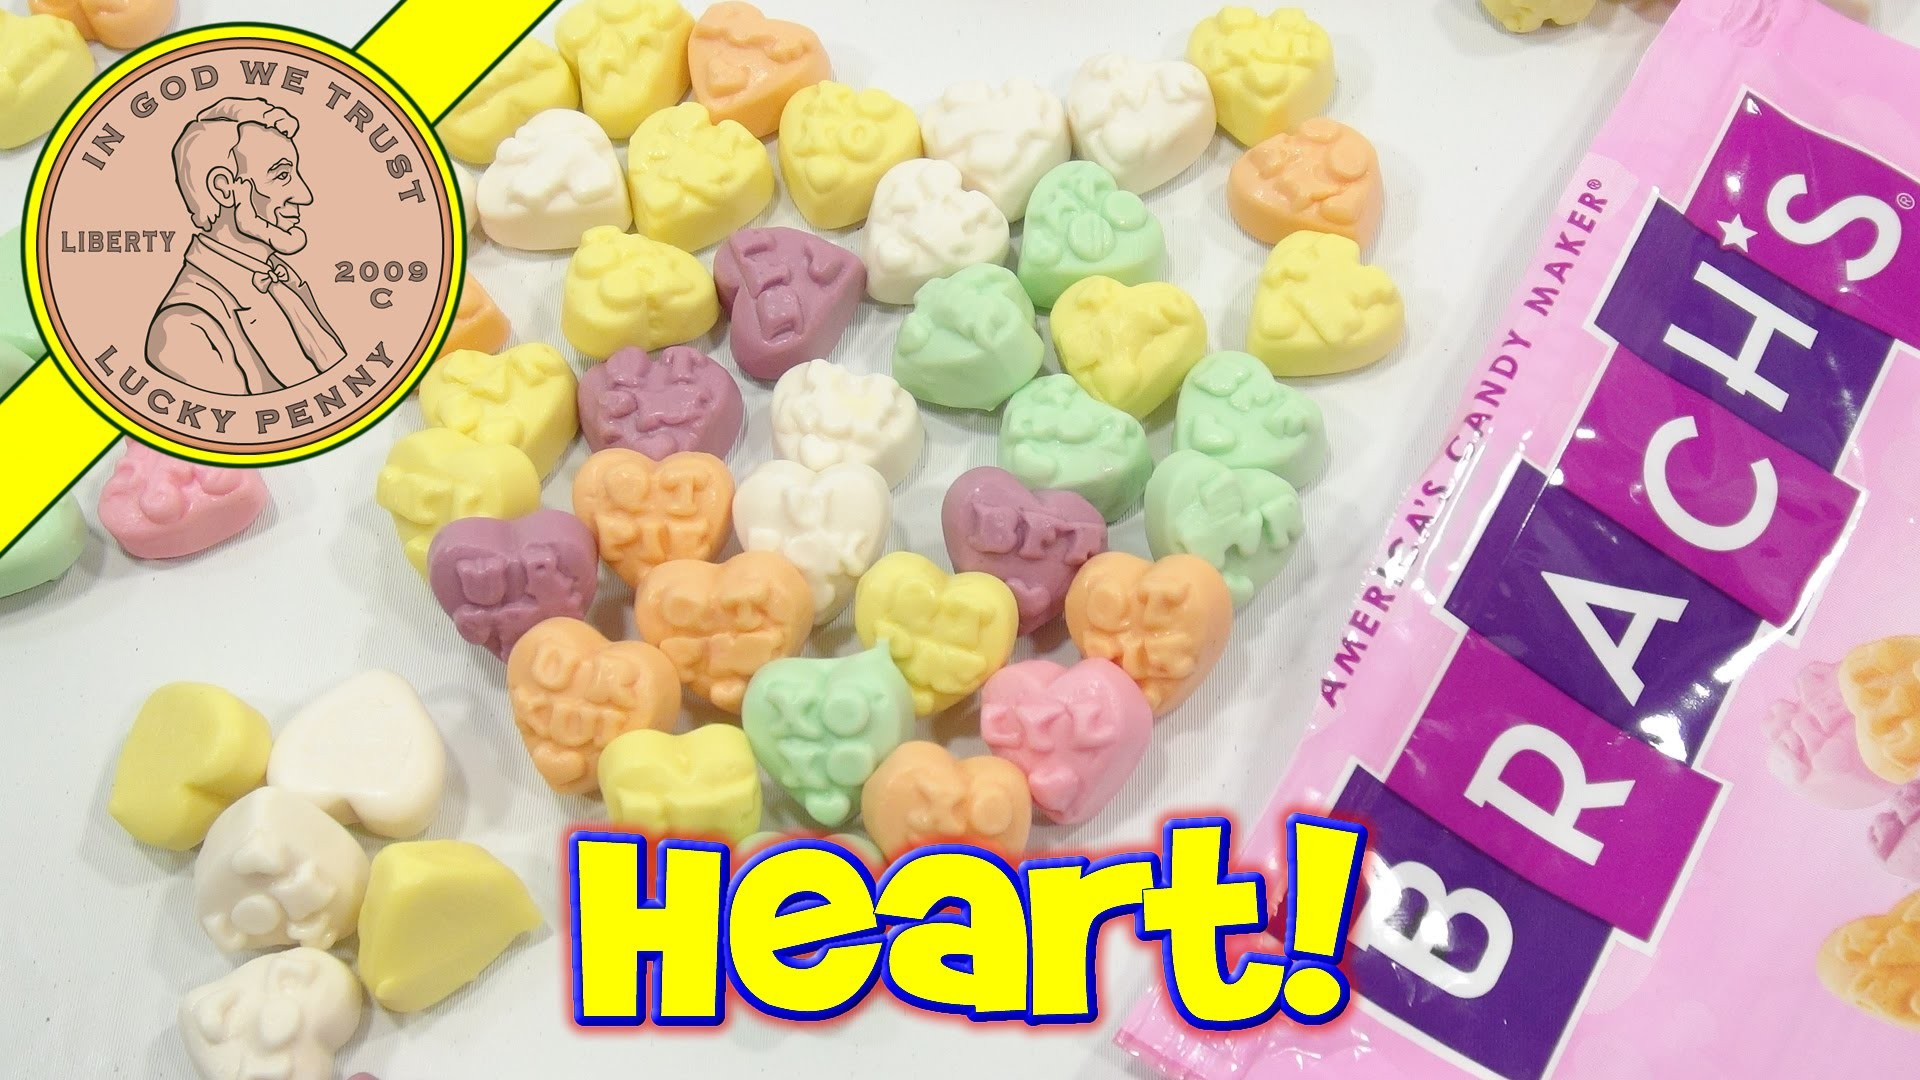 Brach's Conversation Hearts Gummi Valentine's Candy – I Heart You! – YouTube